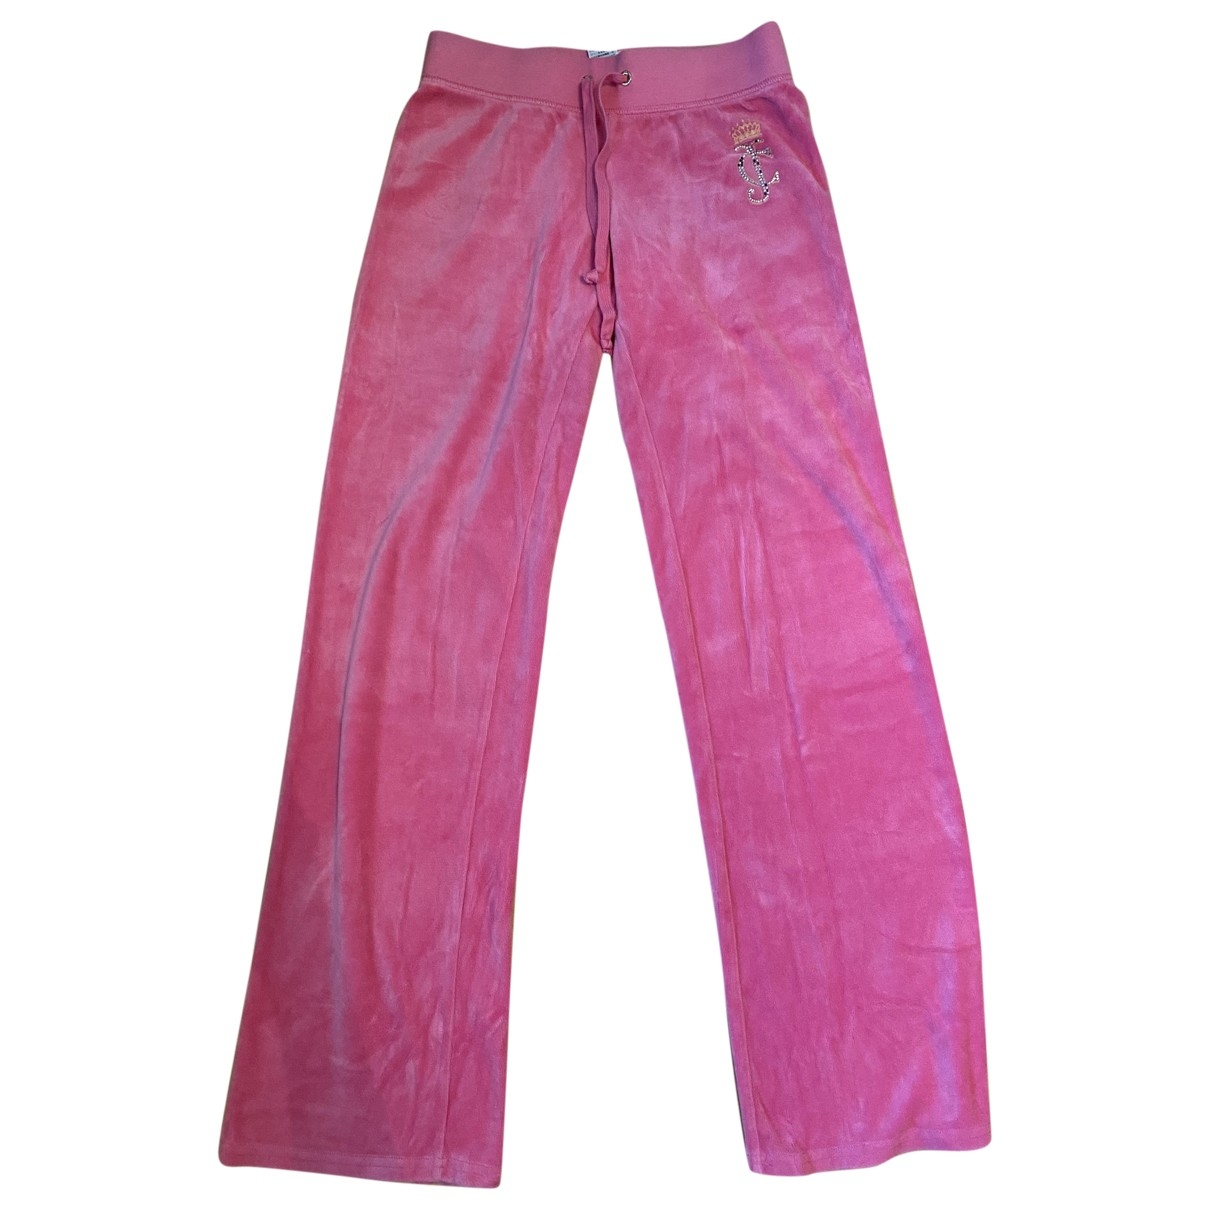 Juicy Couture \N Pink Cotton Trousers for Women XS International